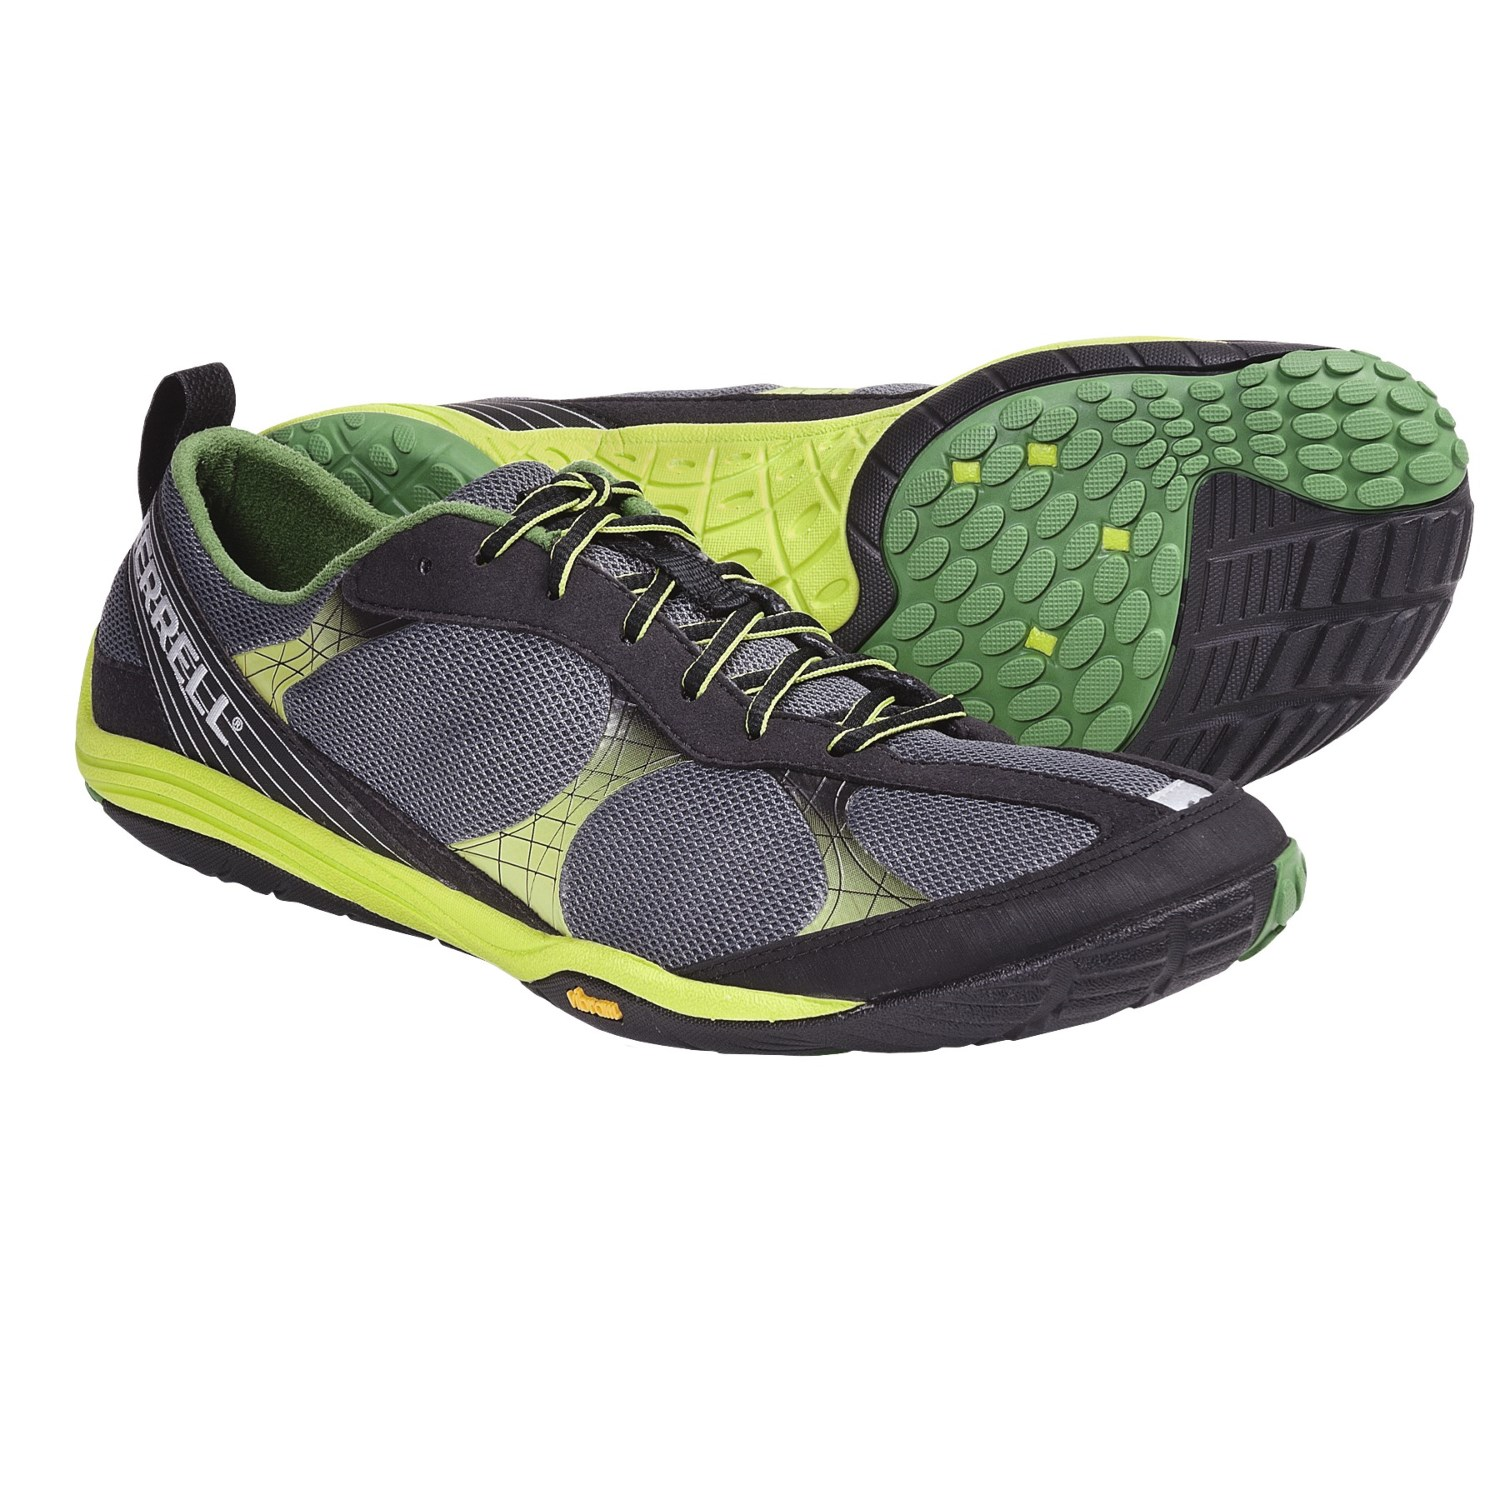 Merrell Barefoot Road Glove Running Shoes